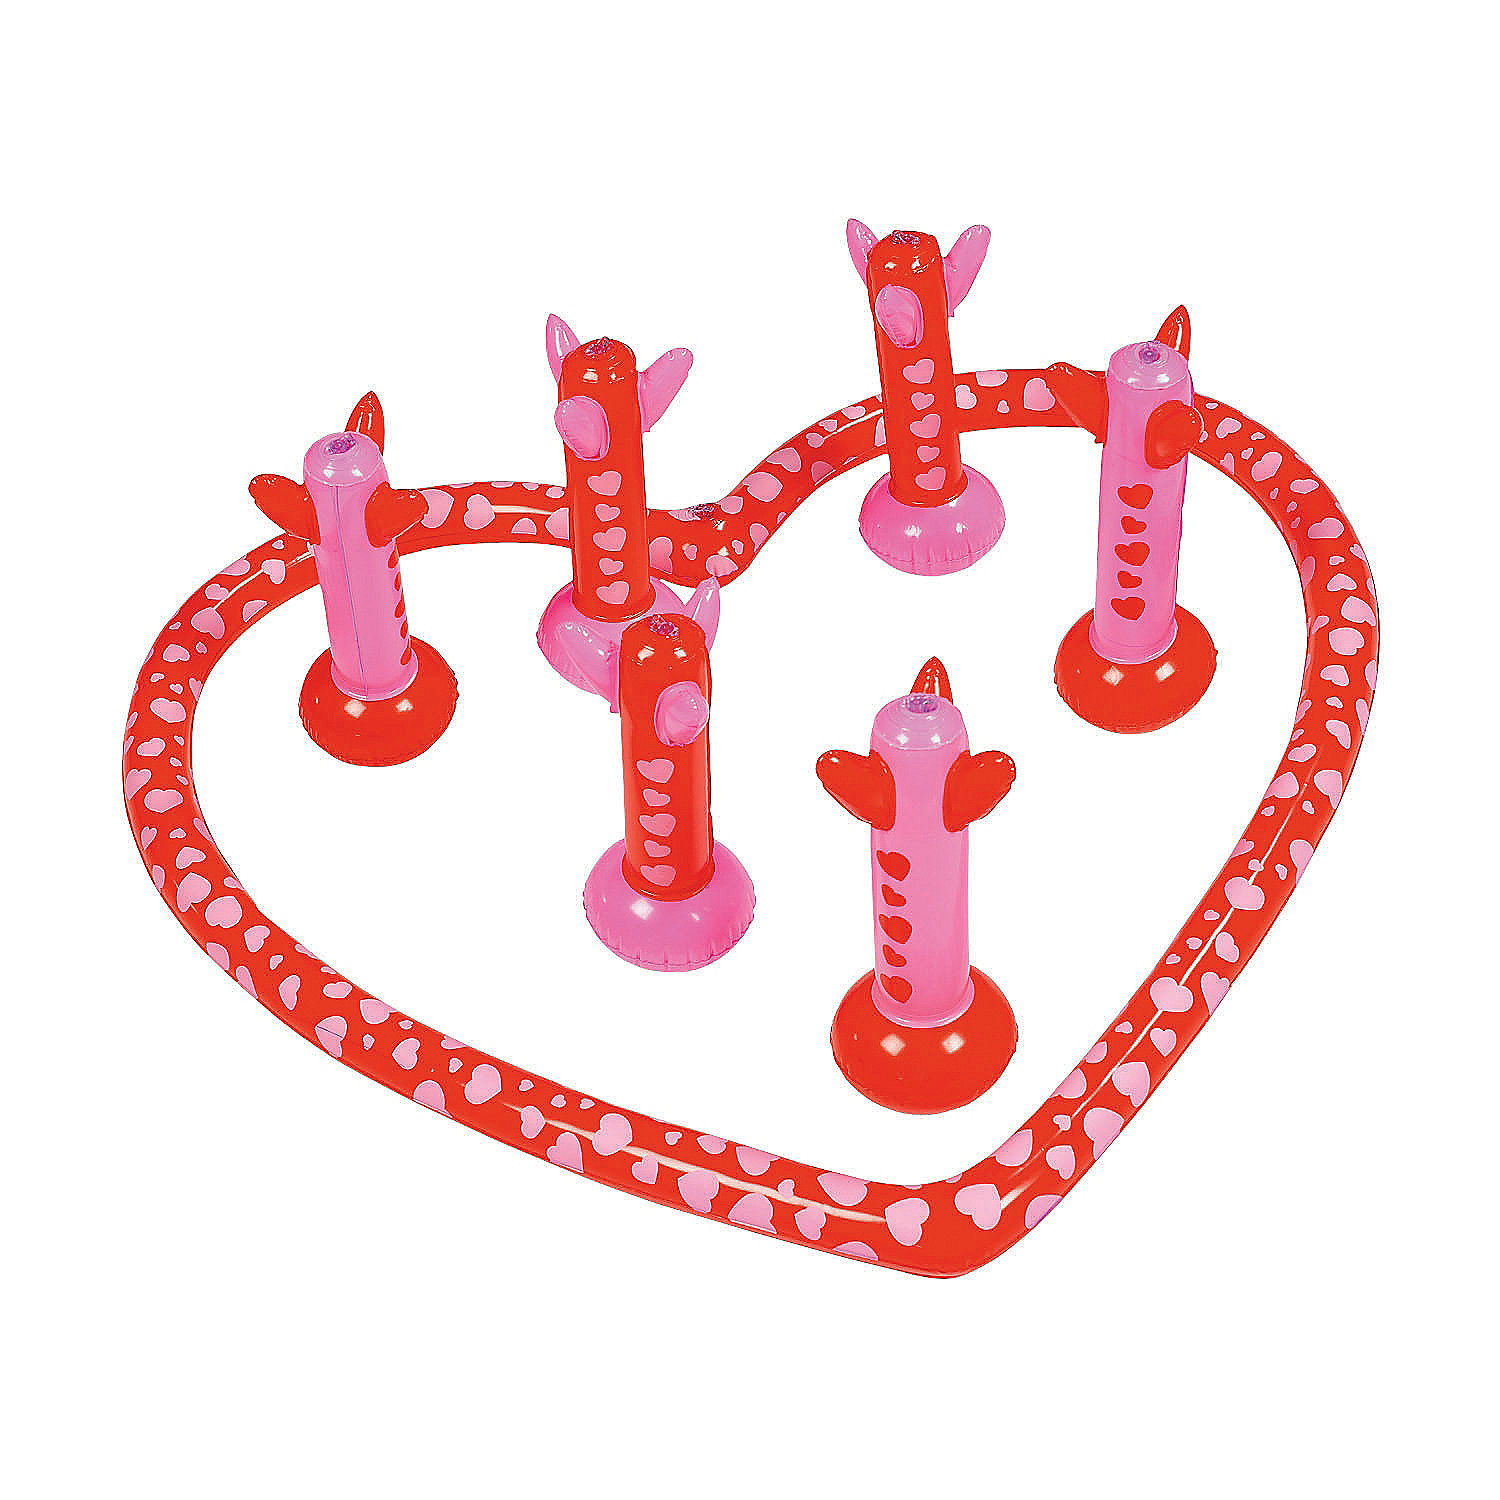 IN-13816974 Inflatable Valentine Arrow Game By Fun Express